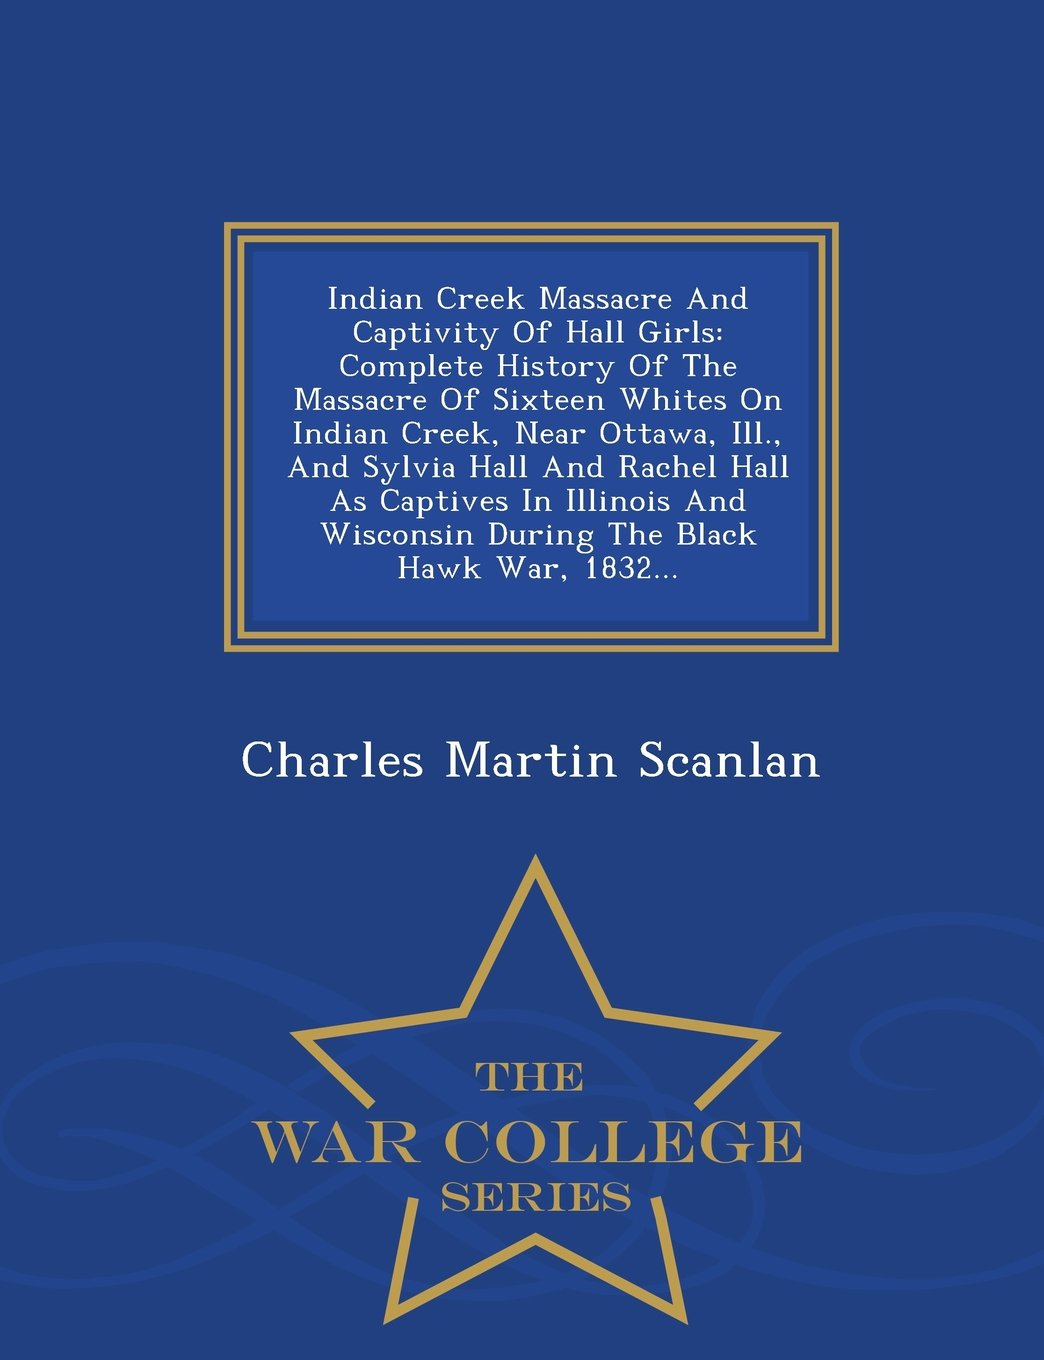 Download Indian Creek Massacre And Captivity Of Hall Girls: Complete History Of The Massacre Of Sixteen Whites On Indian Creek, Near Ottawa, Ill., And Sylvia ... The Black Hawk War, 1832... - War Colleg PDF